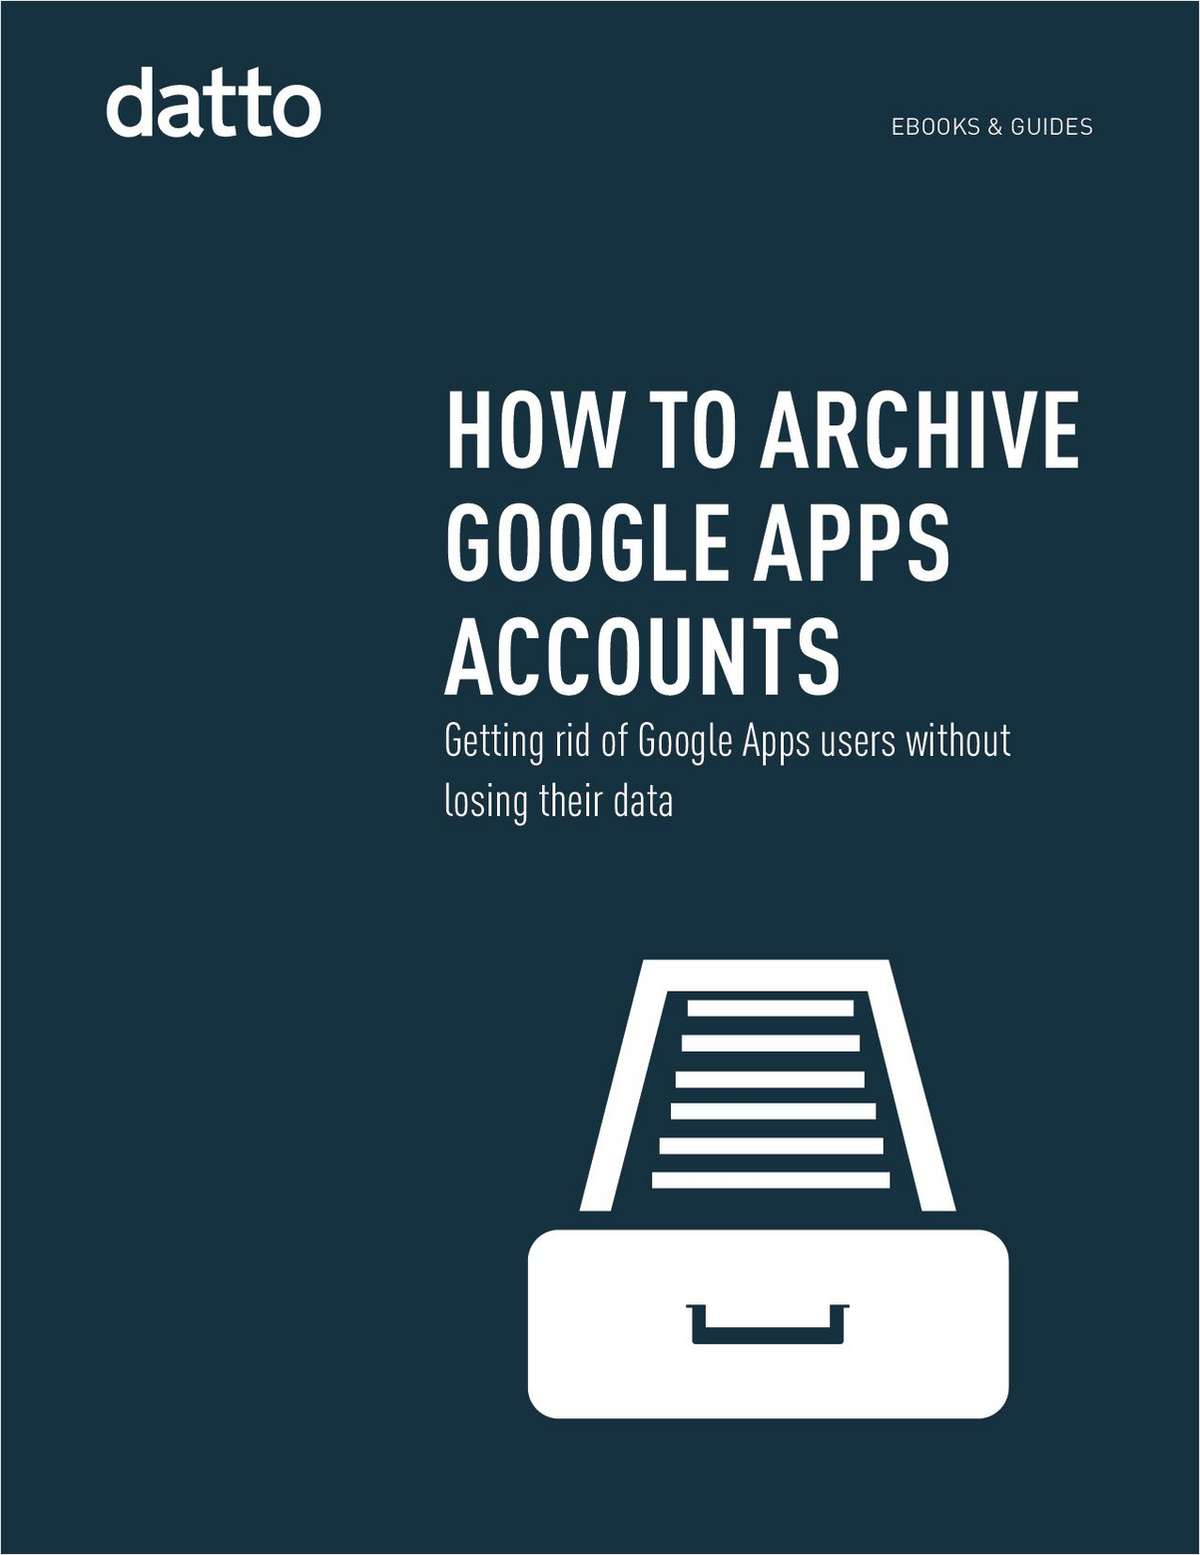 How To Archive Google Apps Accounts